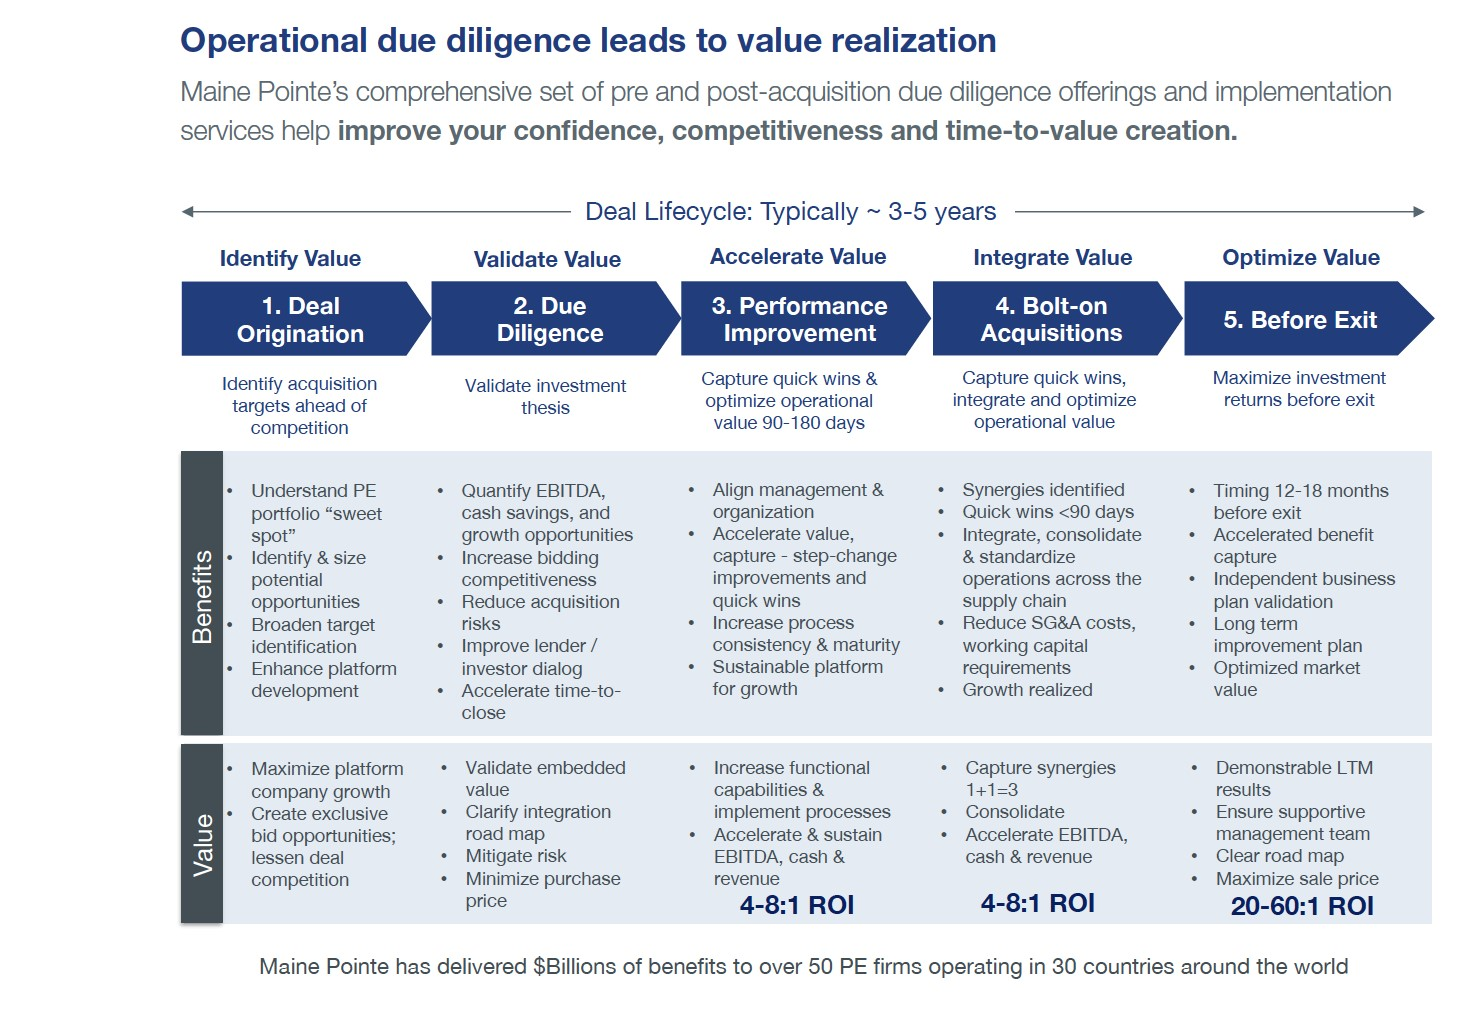 Operational DD leads to value realization